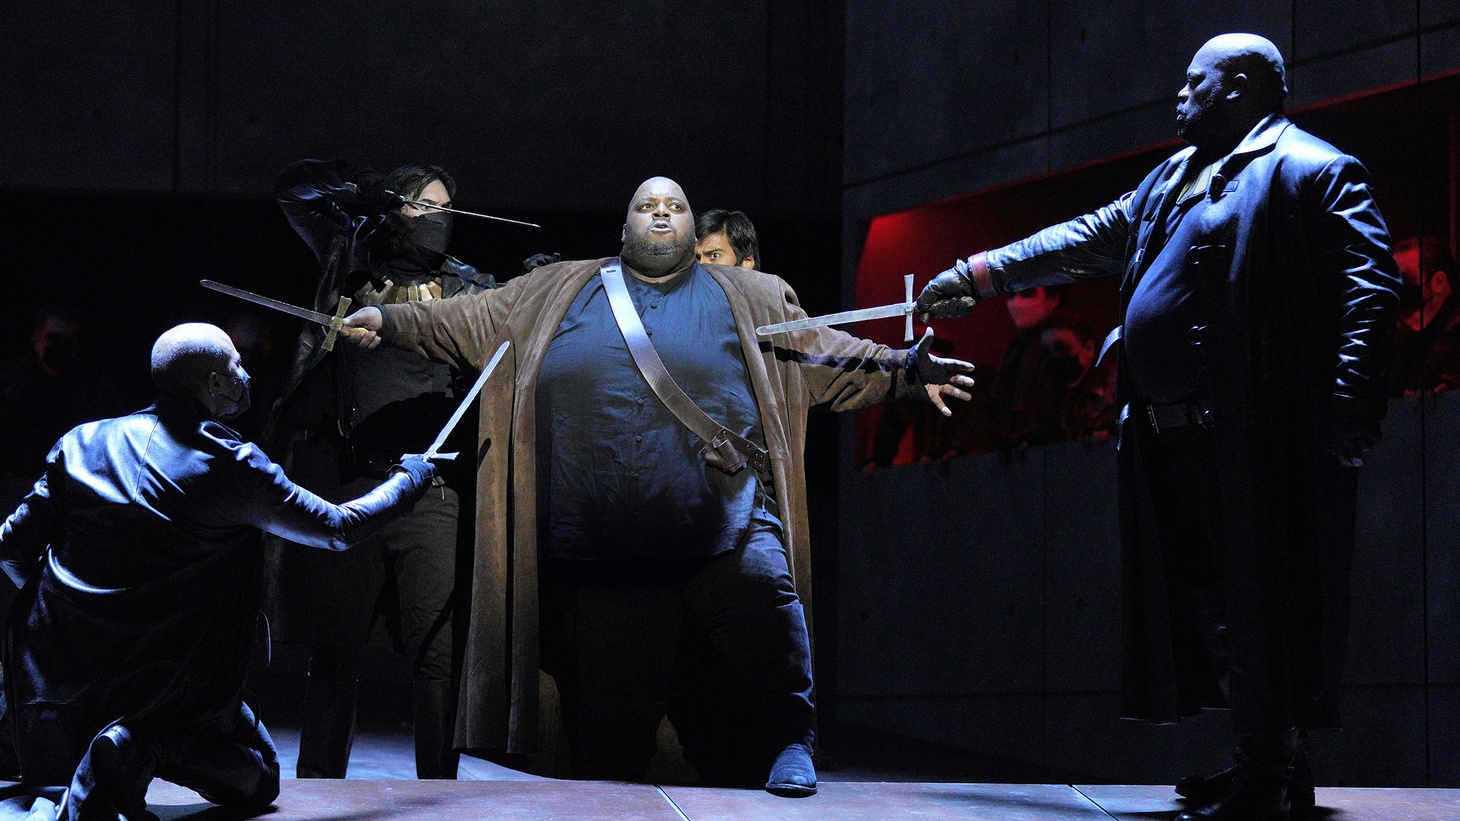 """Live performances have returned to the LA Opera, welcoming back fans with Giuseppe Verdi's """"Il Trovatore."""" Tenor Limmie Pulliam (center) plays Manrico in the production."""